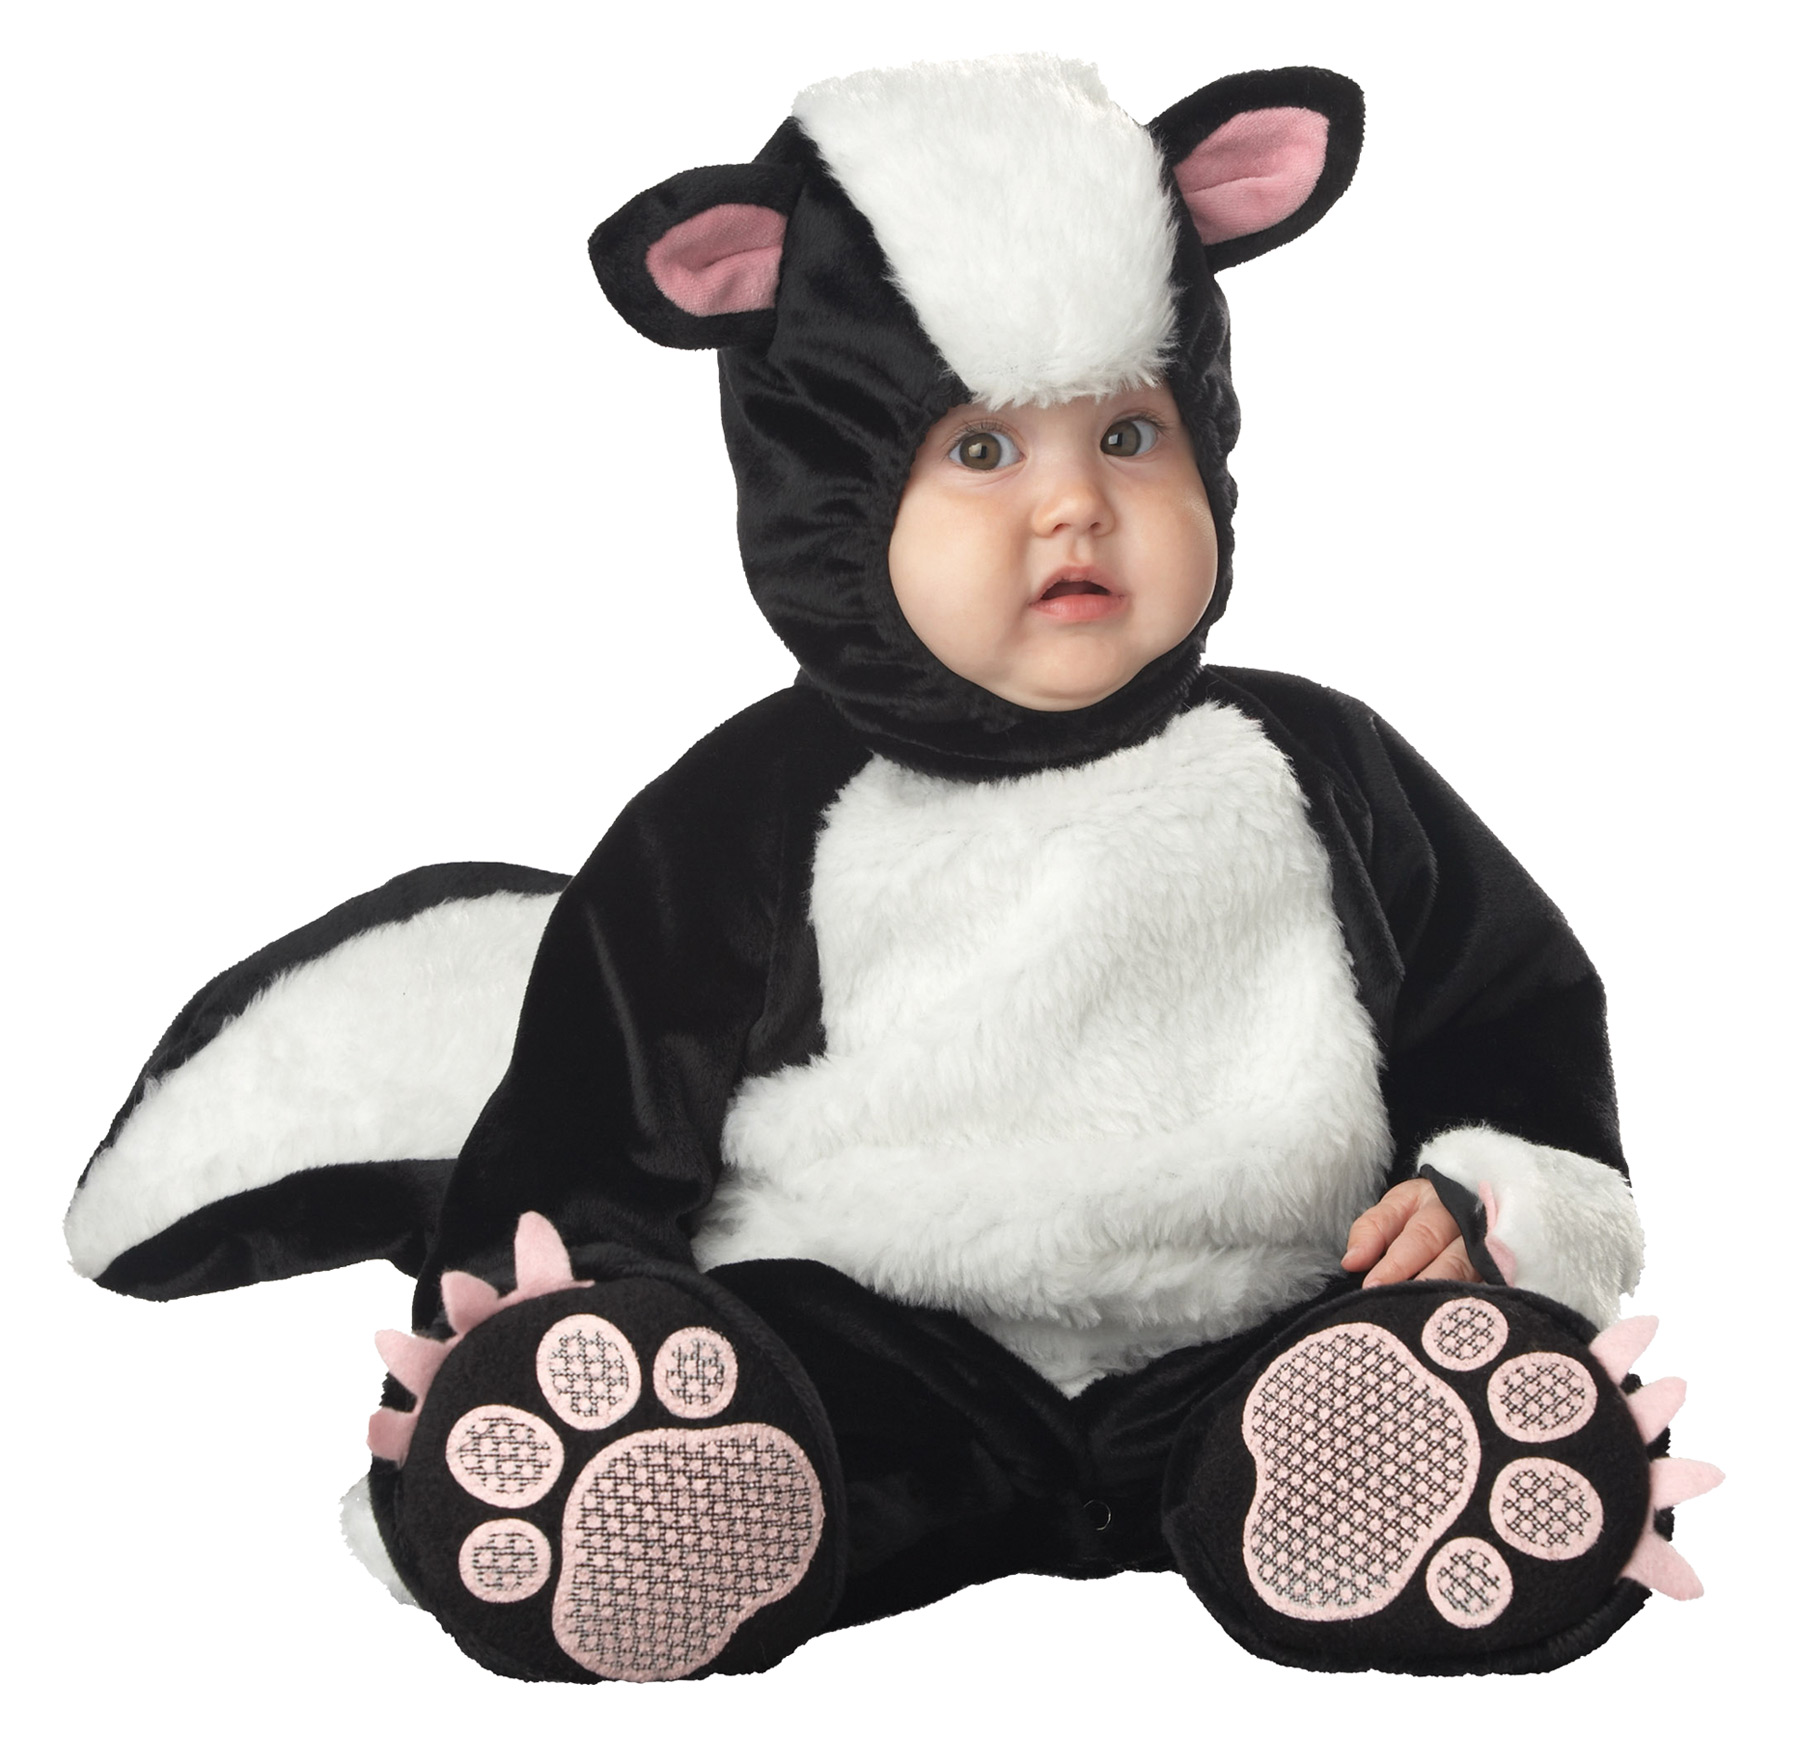 Lil' Stinker Baby Infant Costume - Infant Large